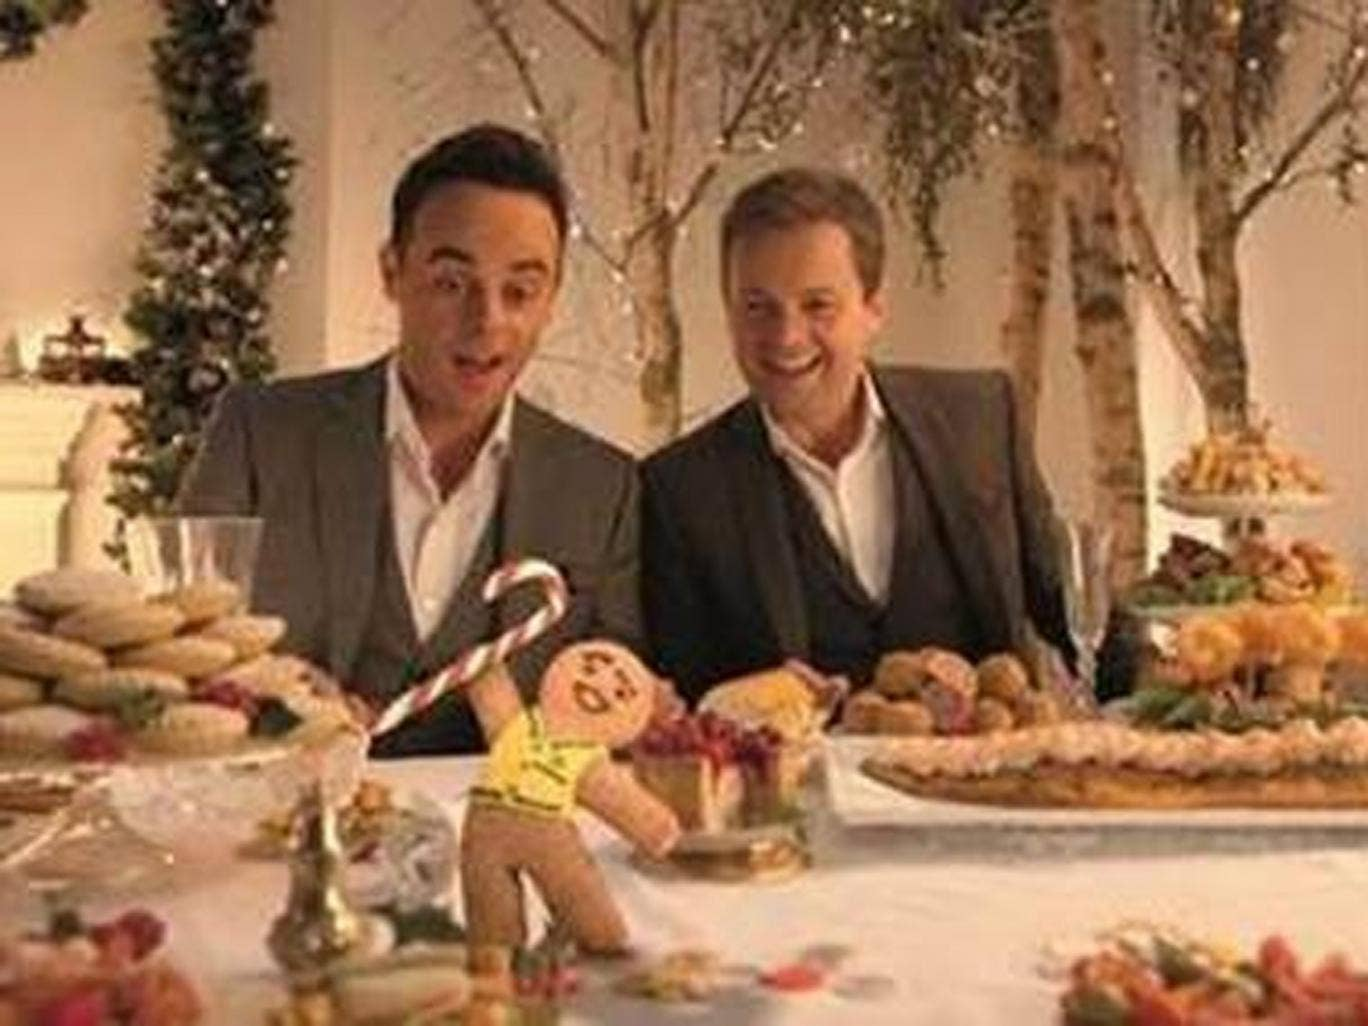 TV presenters Ant and Dec in the Morrisons 2014 Christmas TV advertising campaign